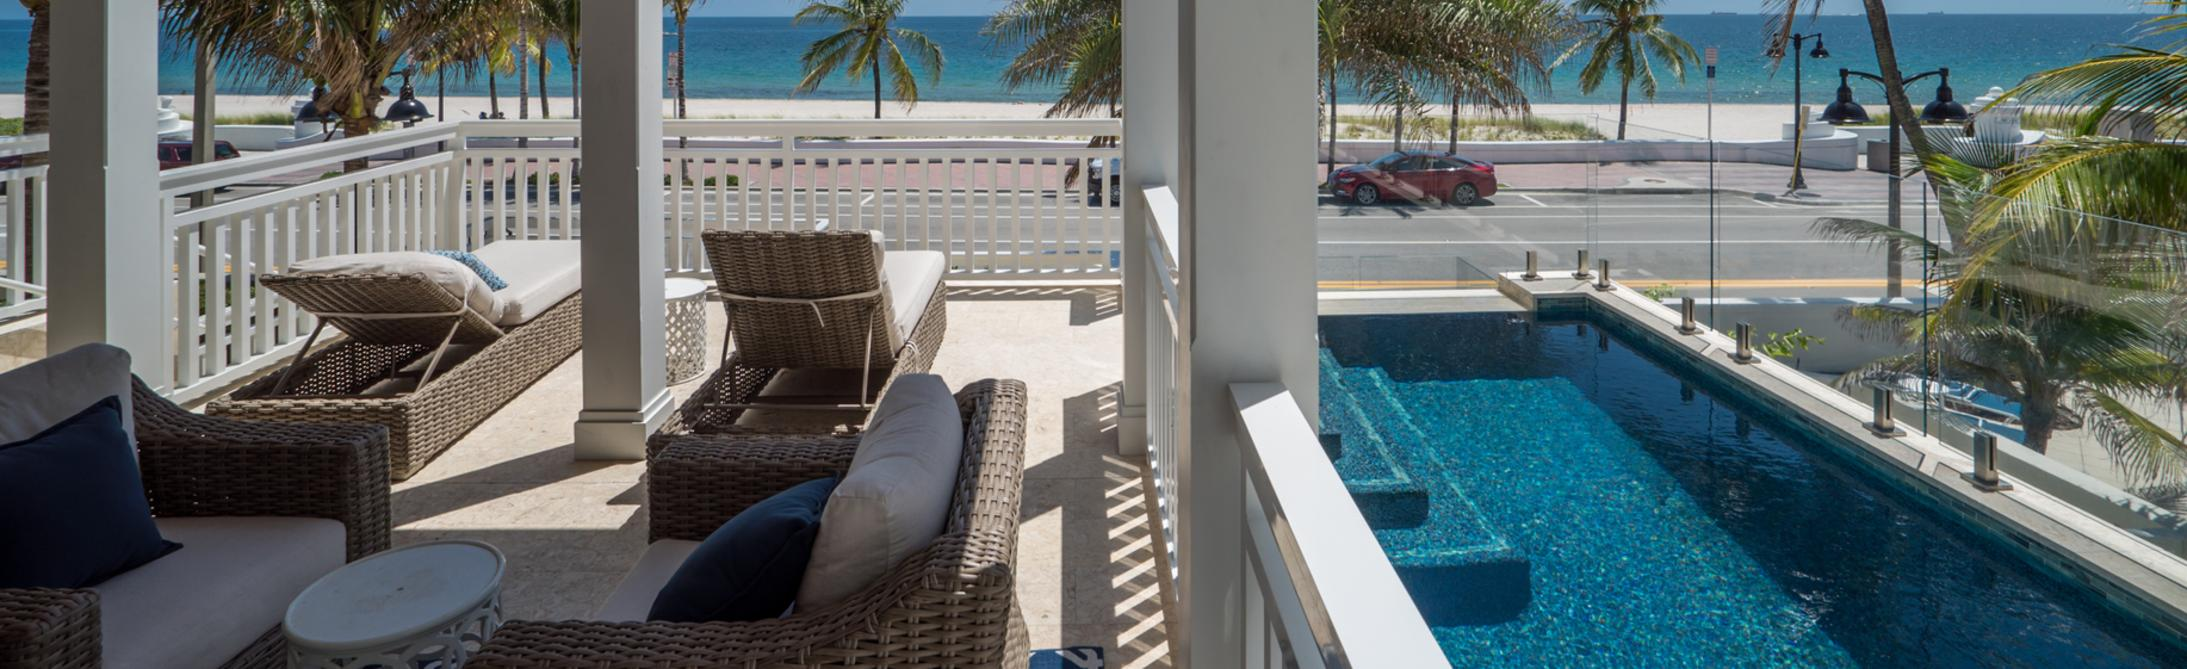 Balcony of a Custom Built Home Overlooking Fort Lauderdale Beach